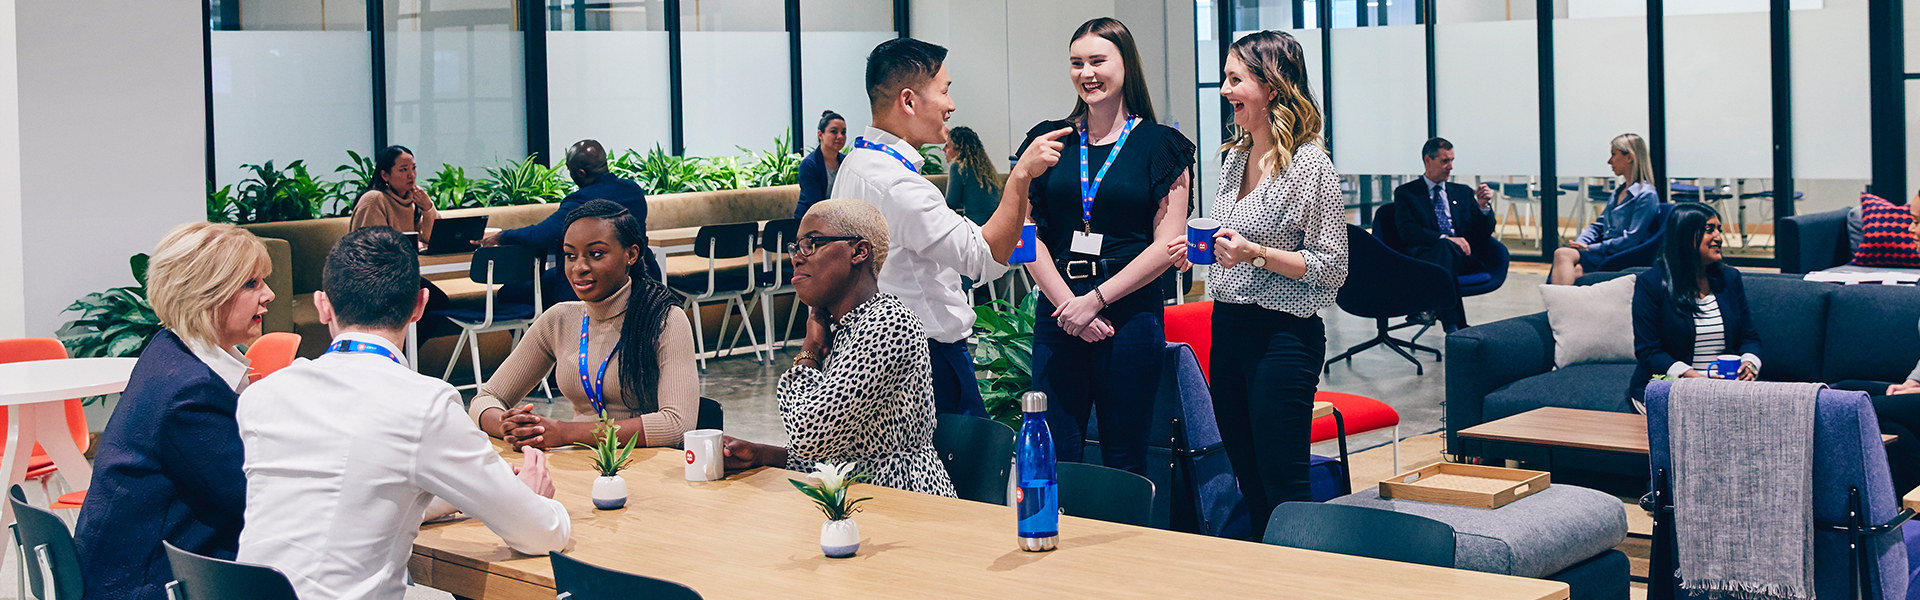 Employees attending a networking event.